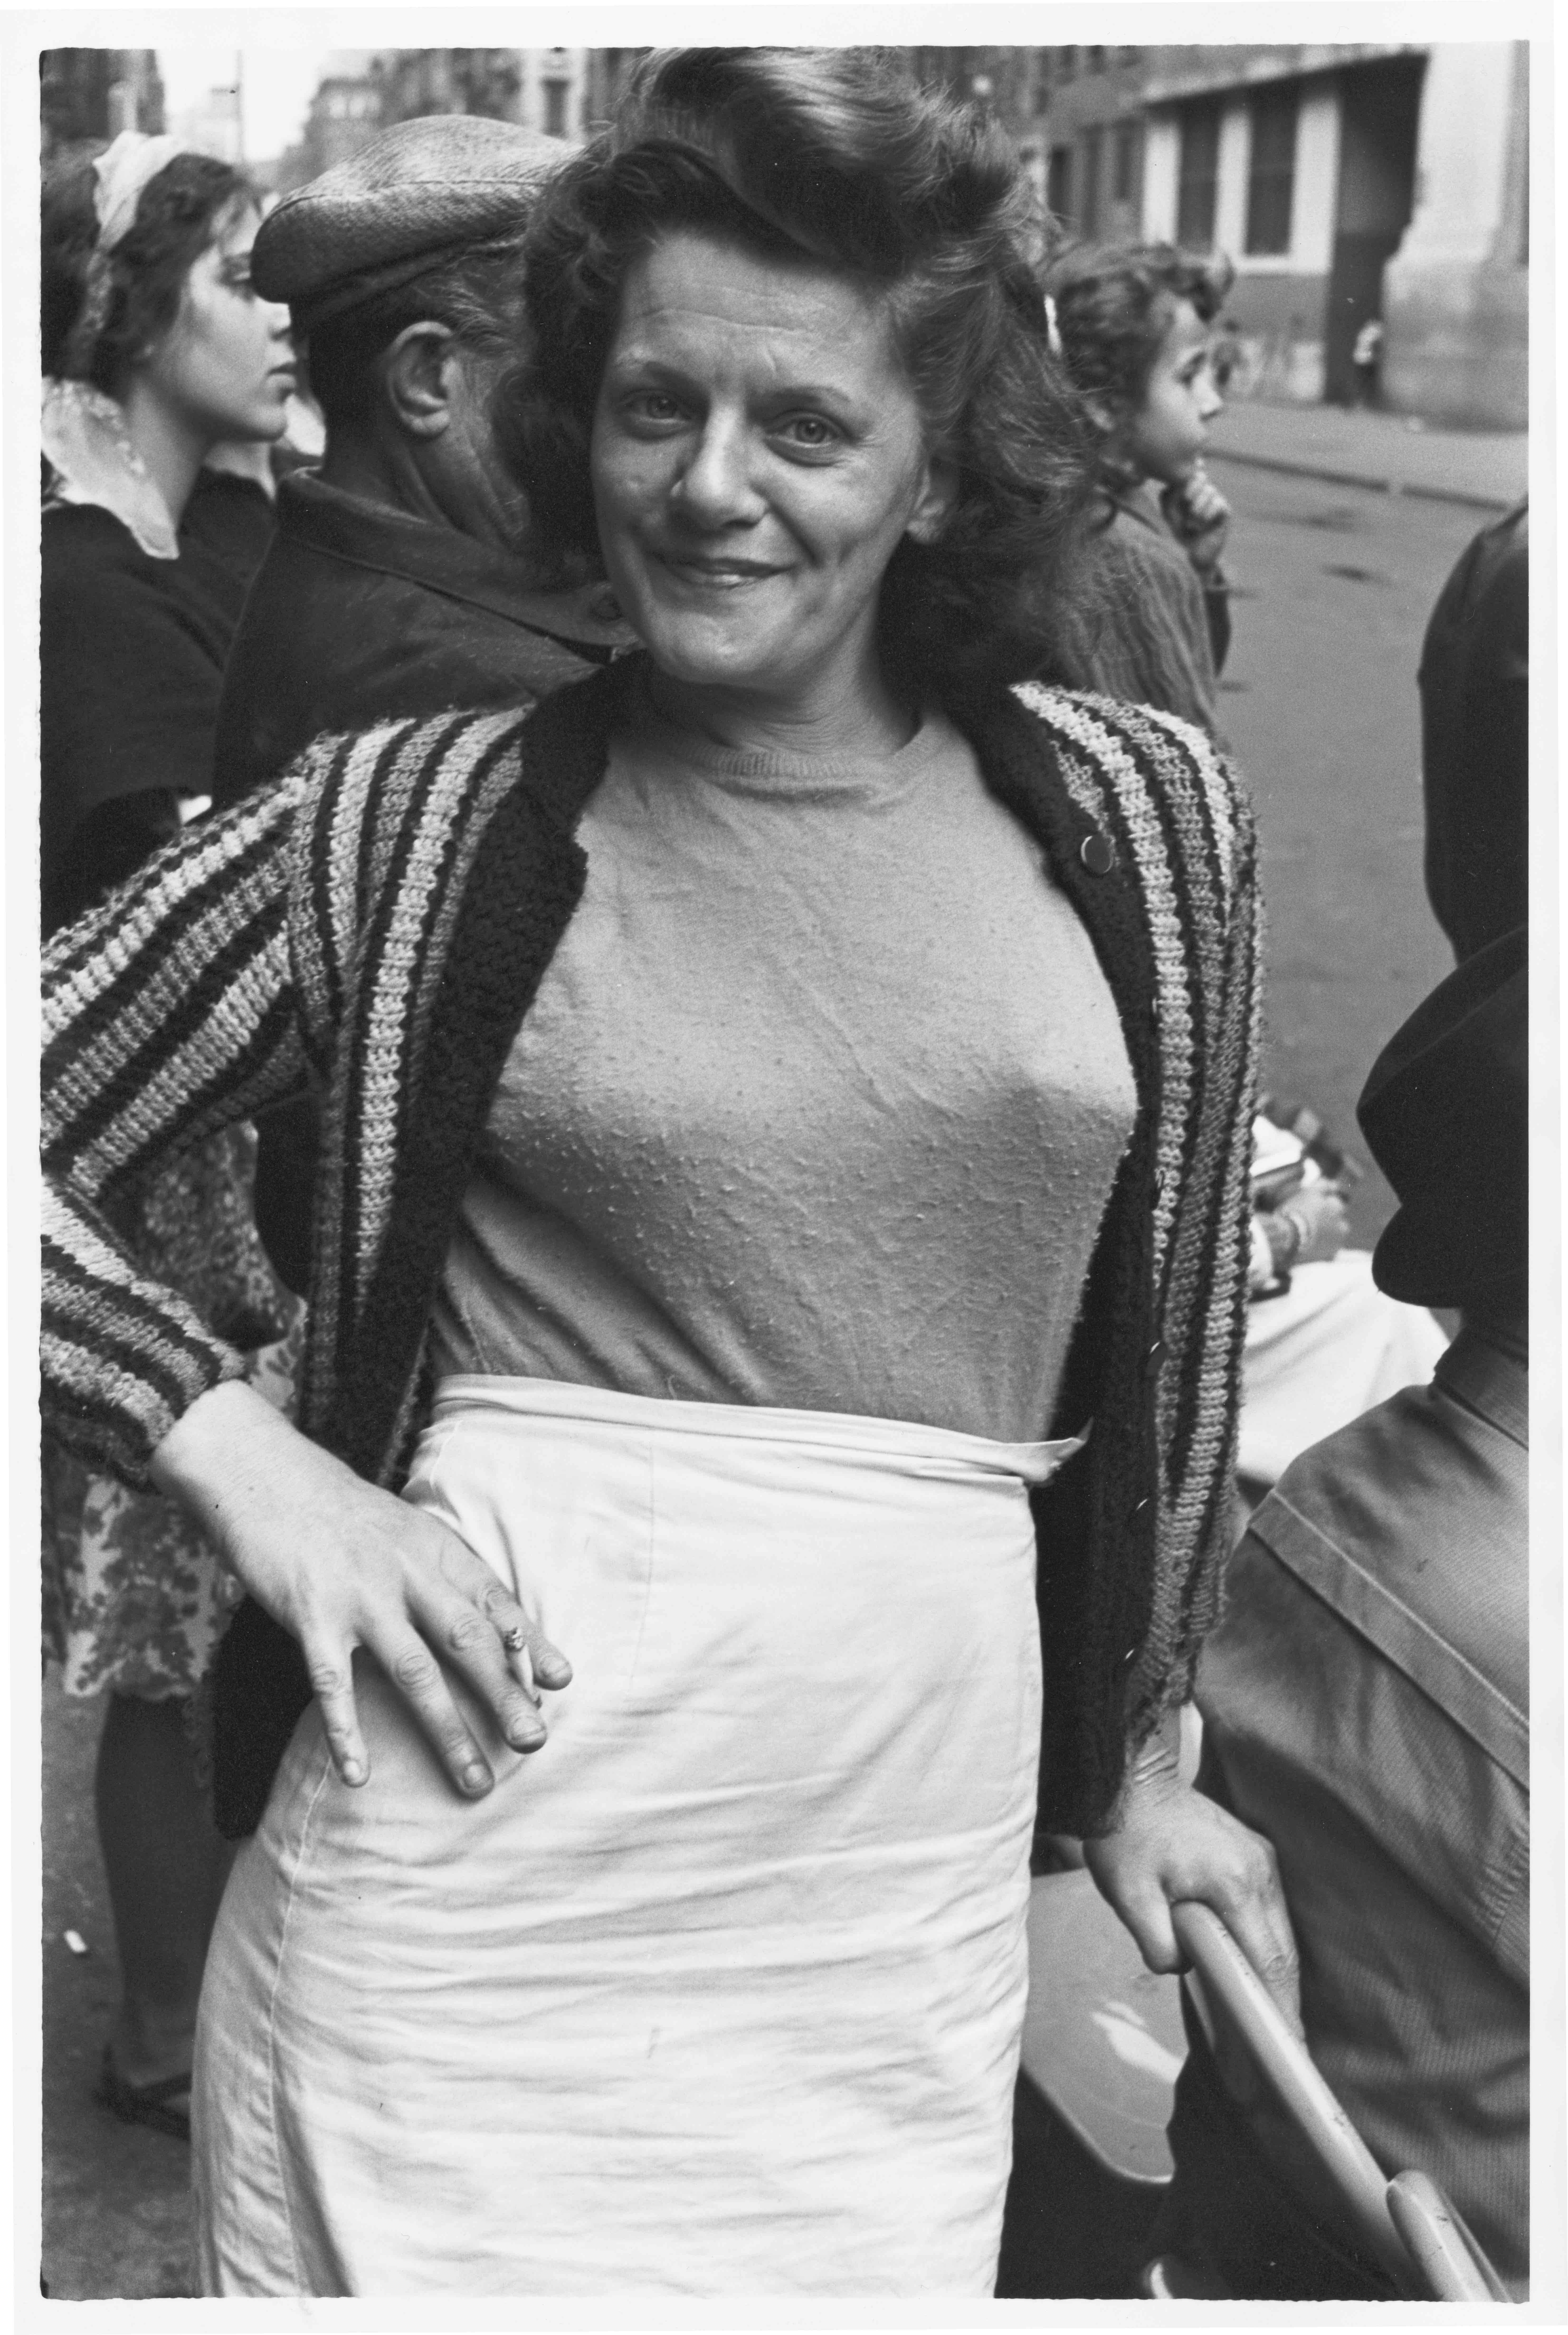 Woman with her hand on her hip, holding a cigarette, 1963